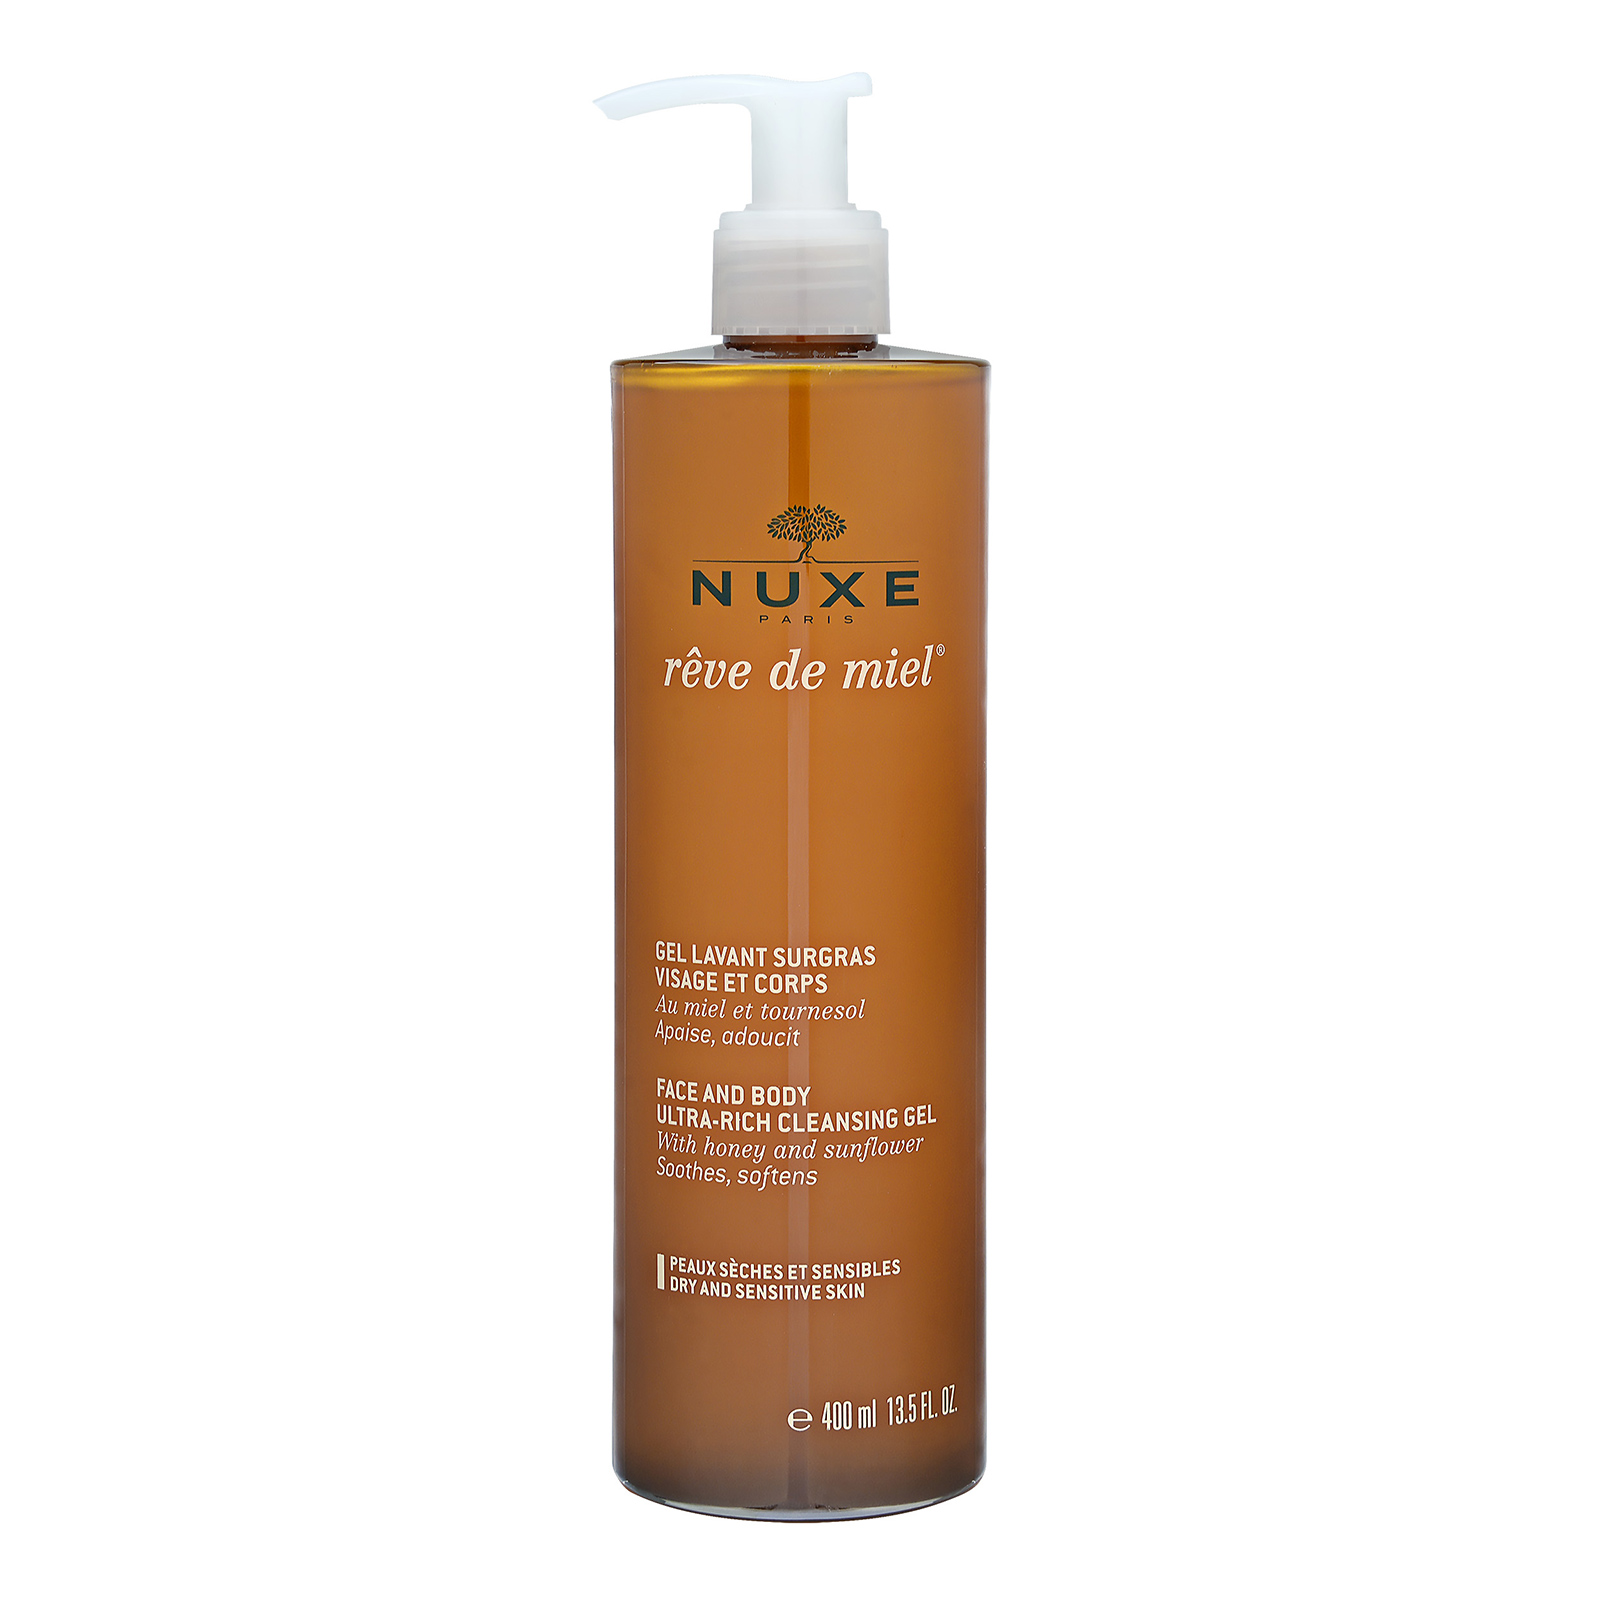 NUXE Rêve de Miel Face and Body Ultra-Rich Cleansing Gel (Dry and Sensitive Skin) 13.5oz, 400ml